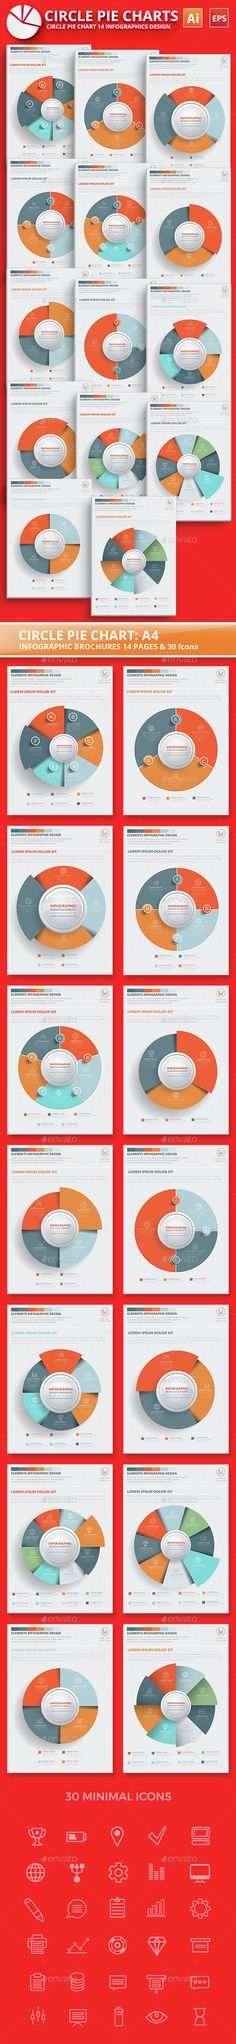 Circle Pie Chart Infographic Elements Design Template Vector EPS, AI. Download here: http://graphicriver.net/item/circle-pie-chart-infographic-elements-design/15117344?ref=ksioks